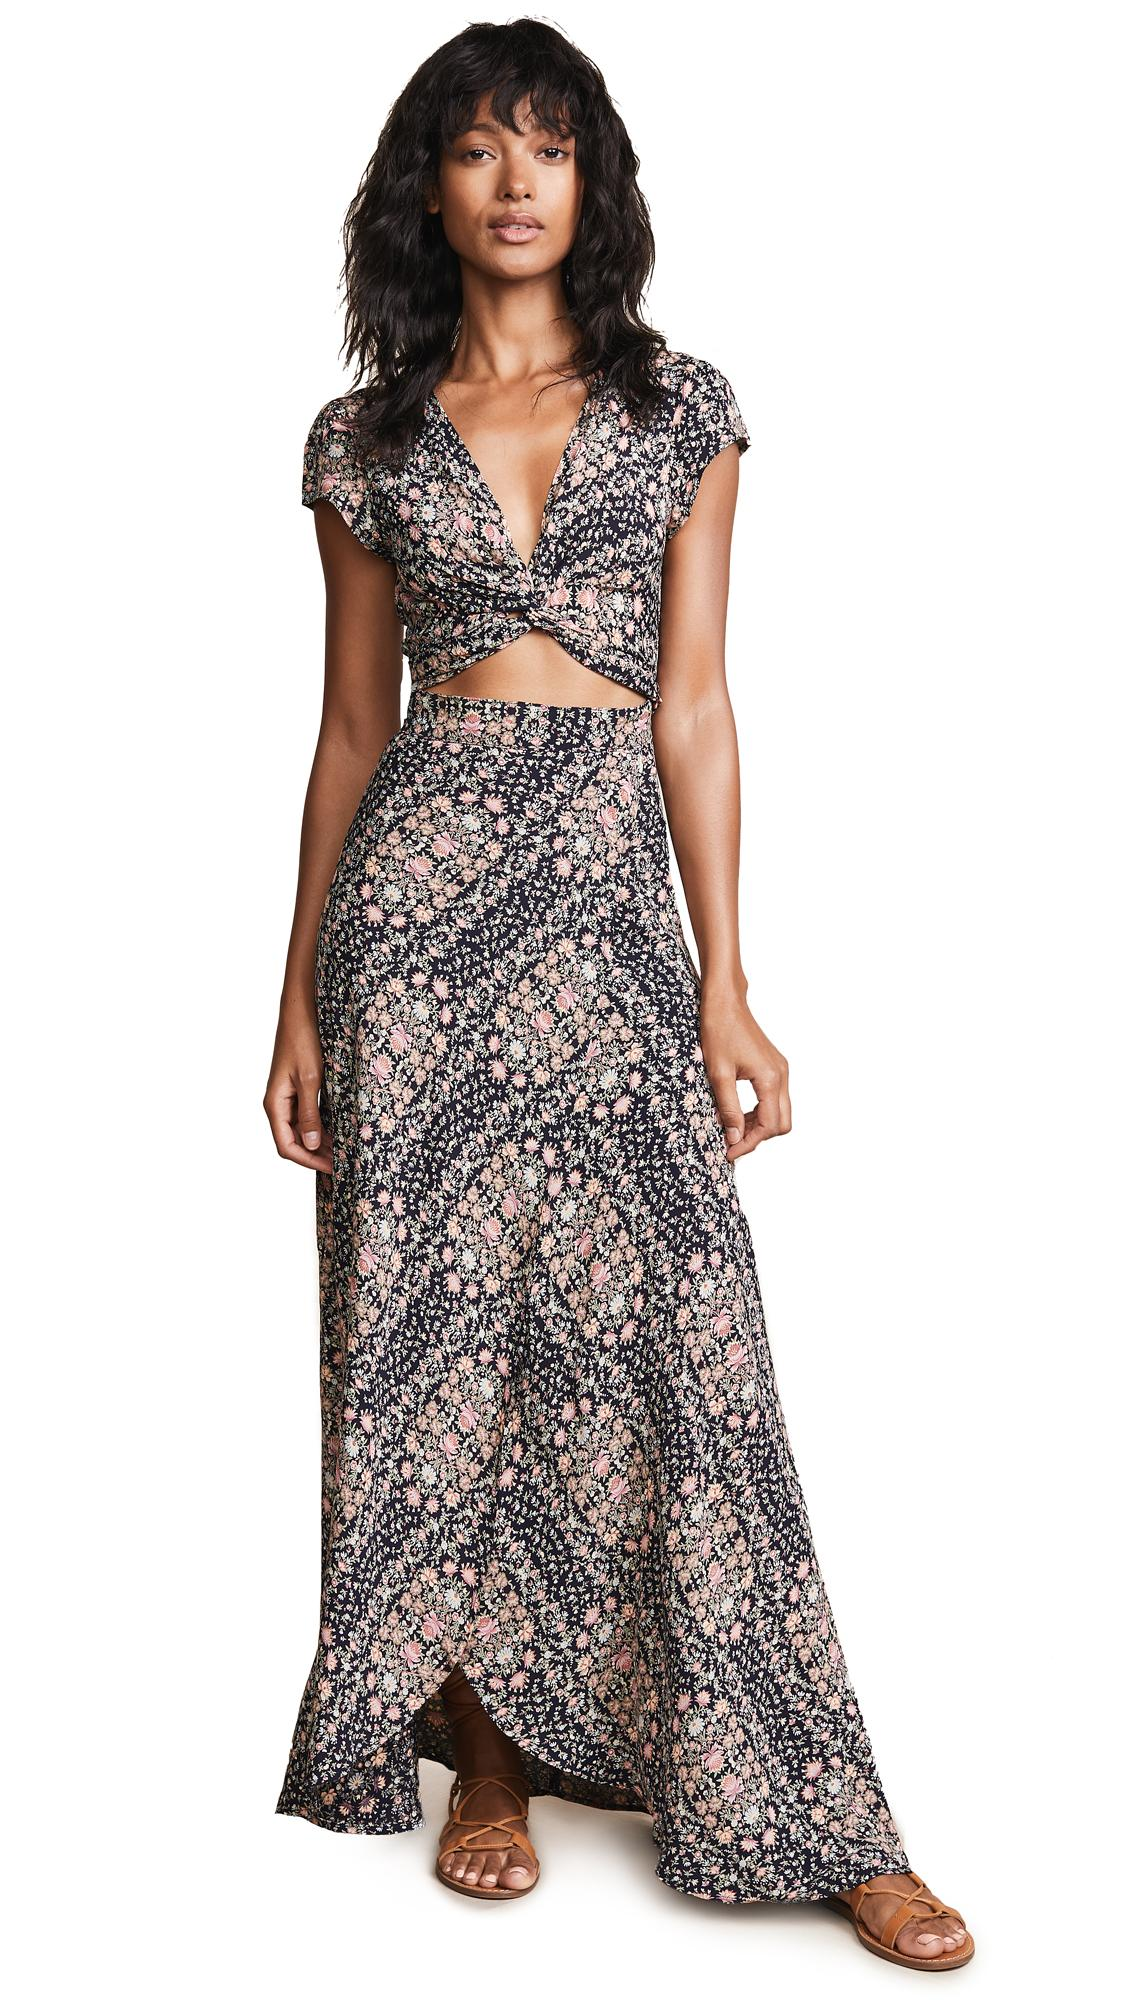 328825f079 Flynn Skye All Wrapped Up Maxi Dress In Love Daze. Shopbop. 220Login to see  price